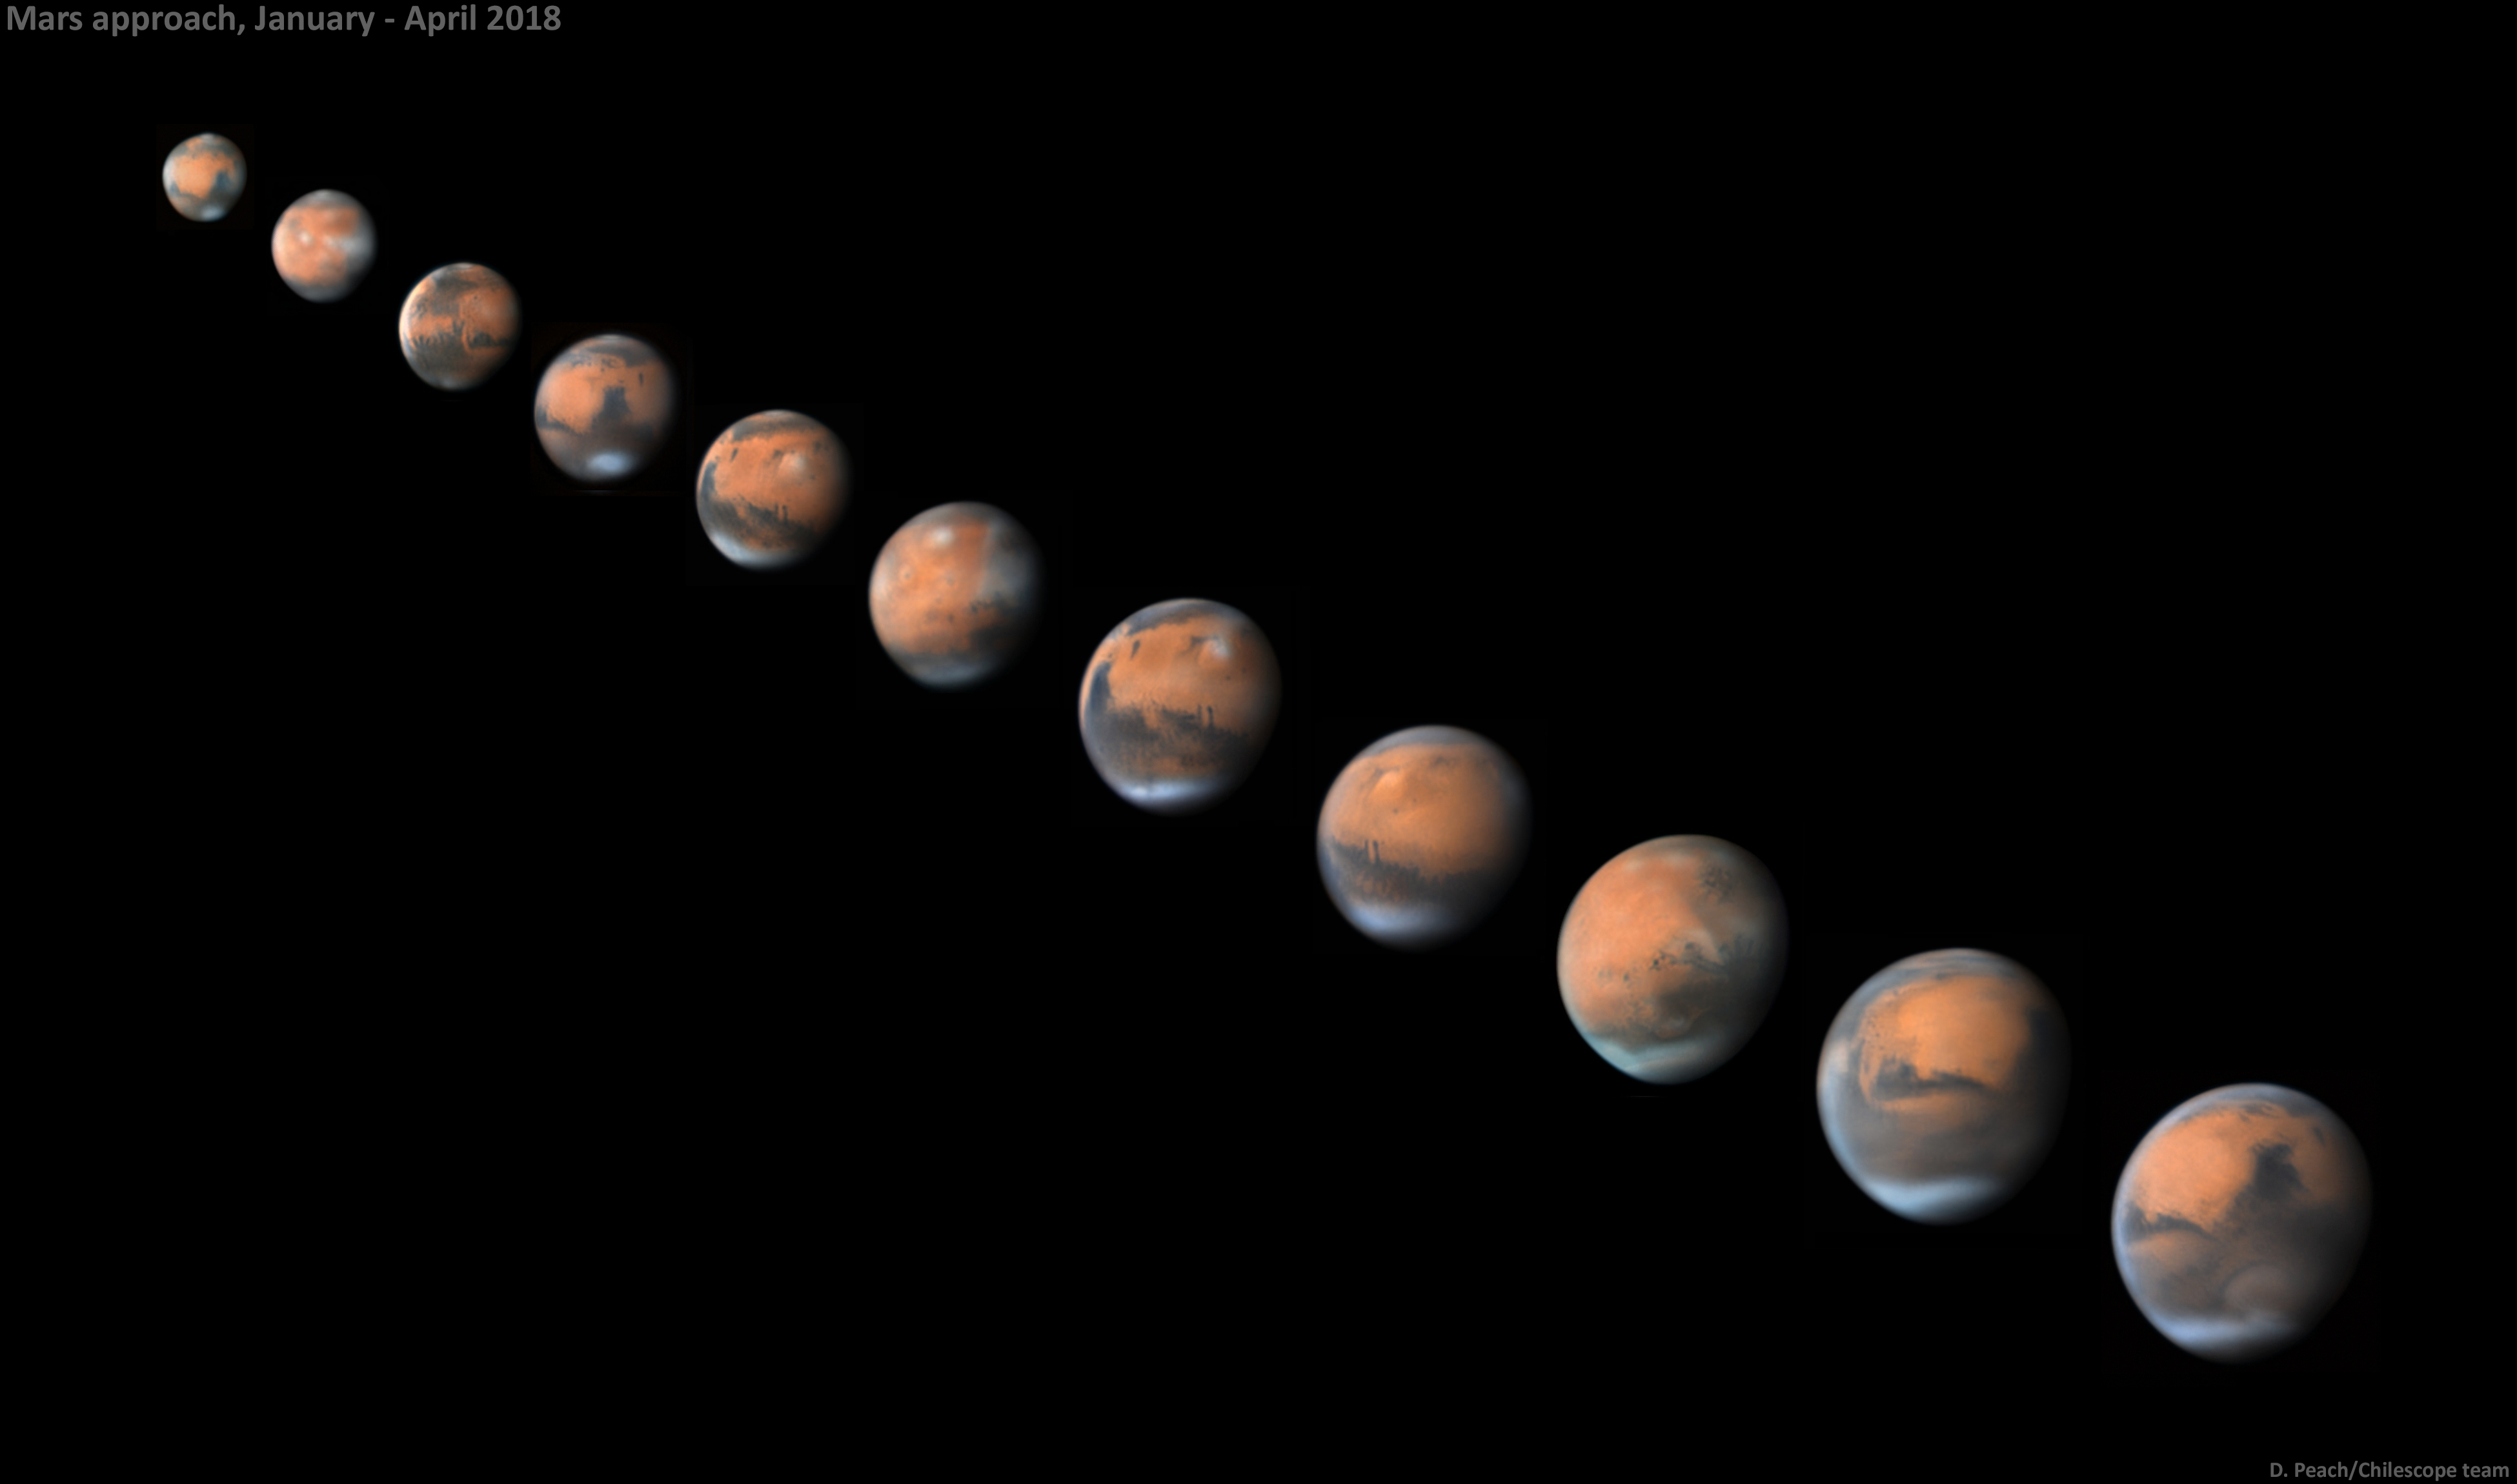 Approaching Mars on Spaceship Earth